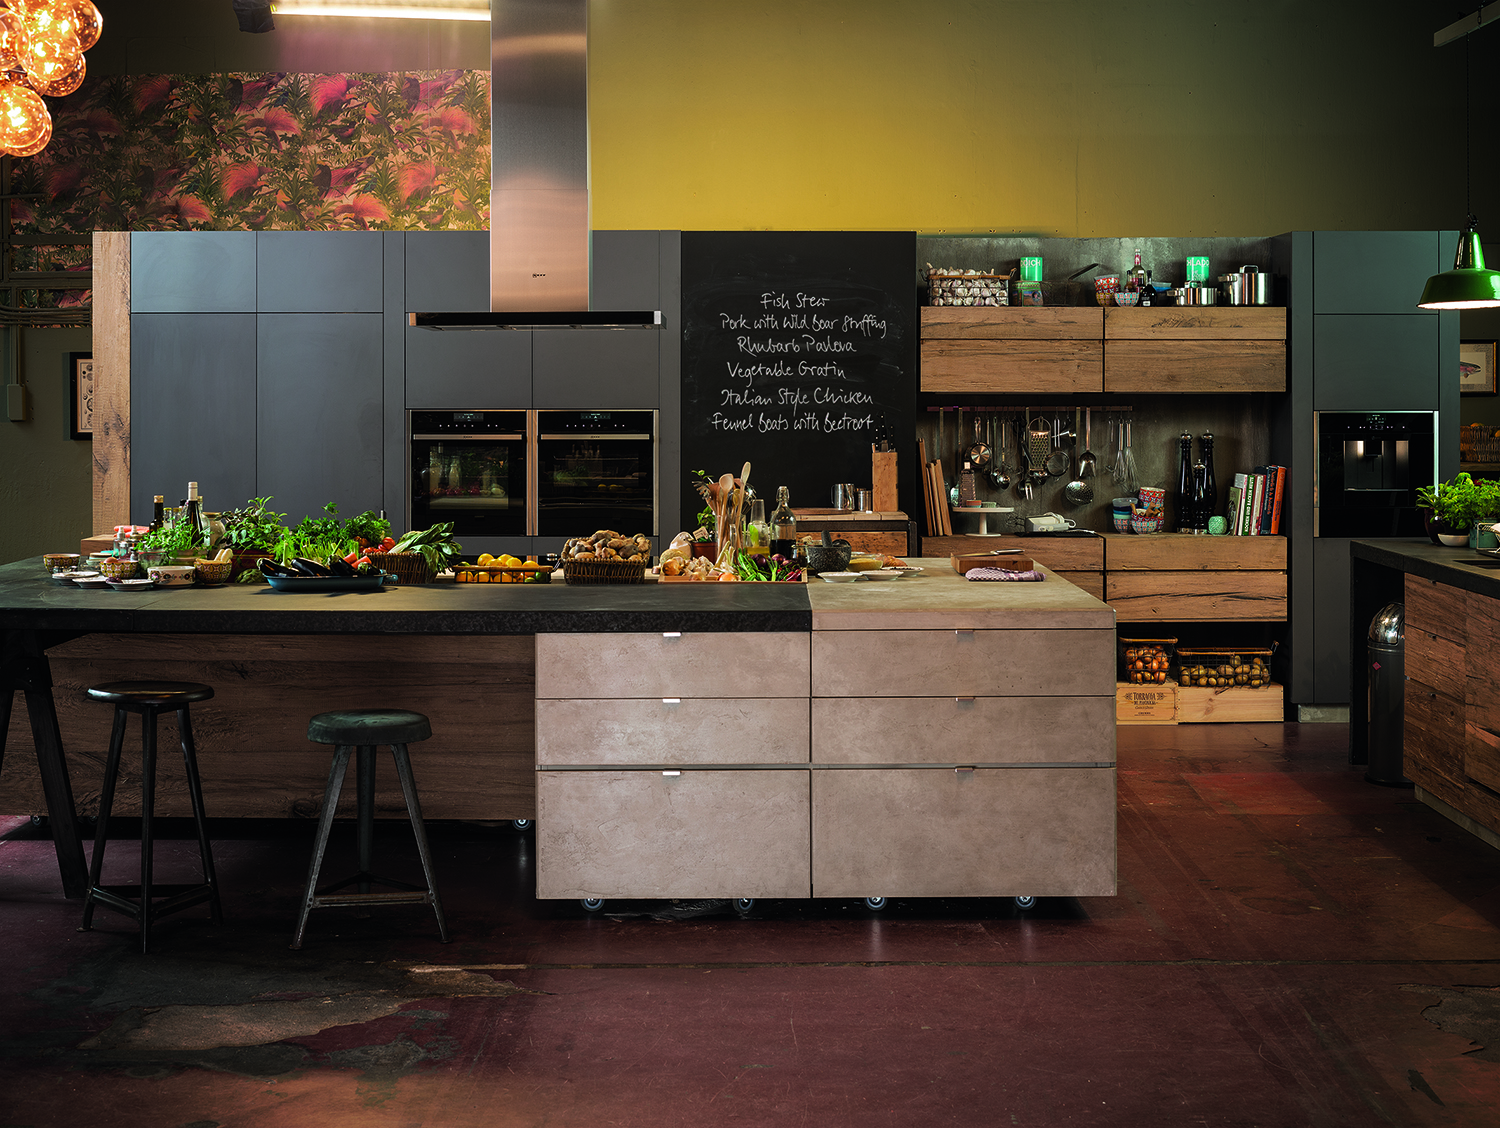 Neff - Appliance City - Getting to know our Manufacturers